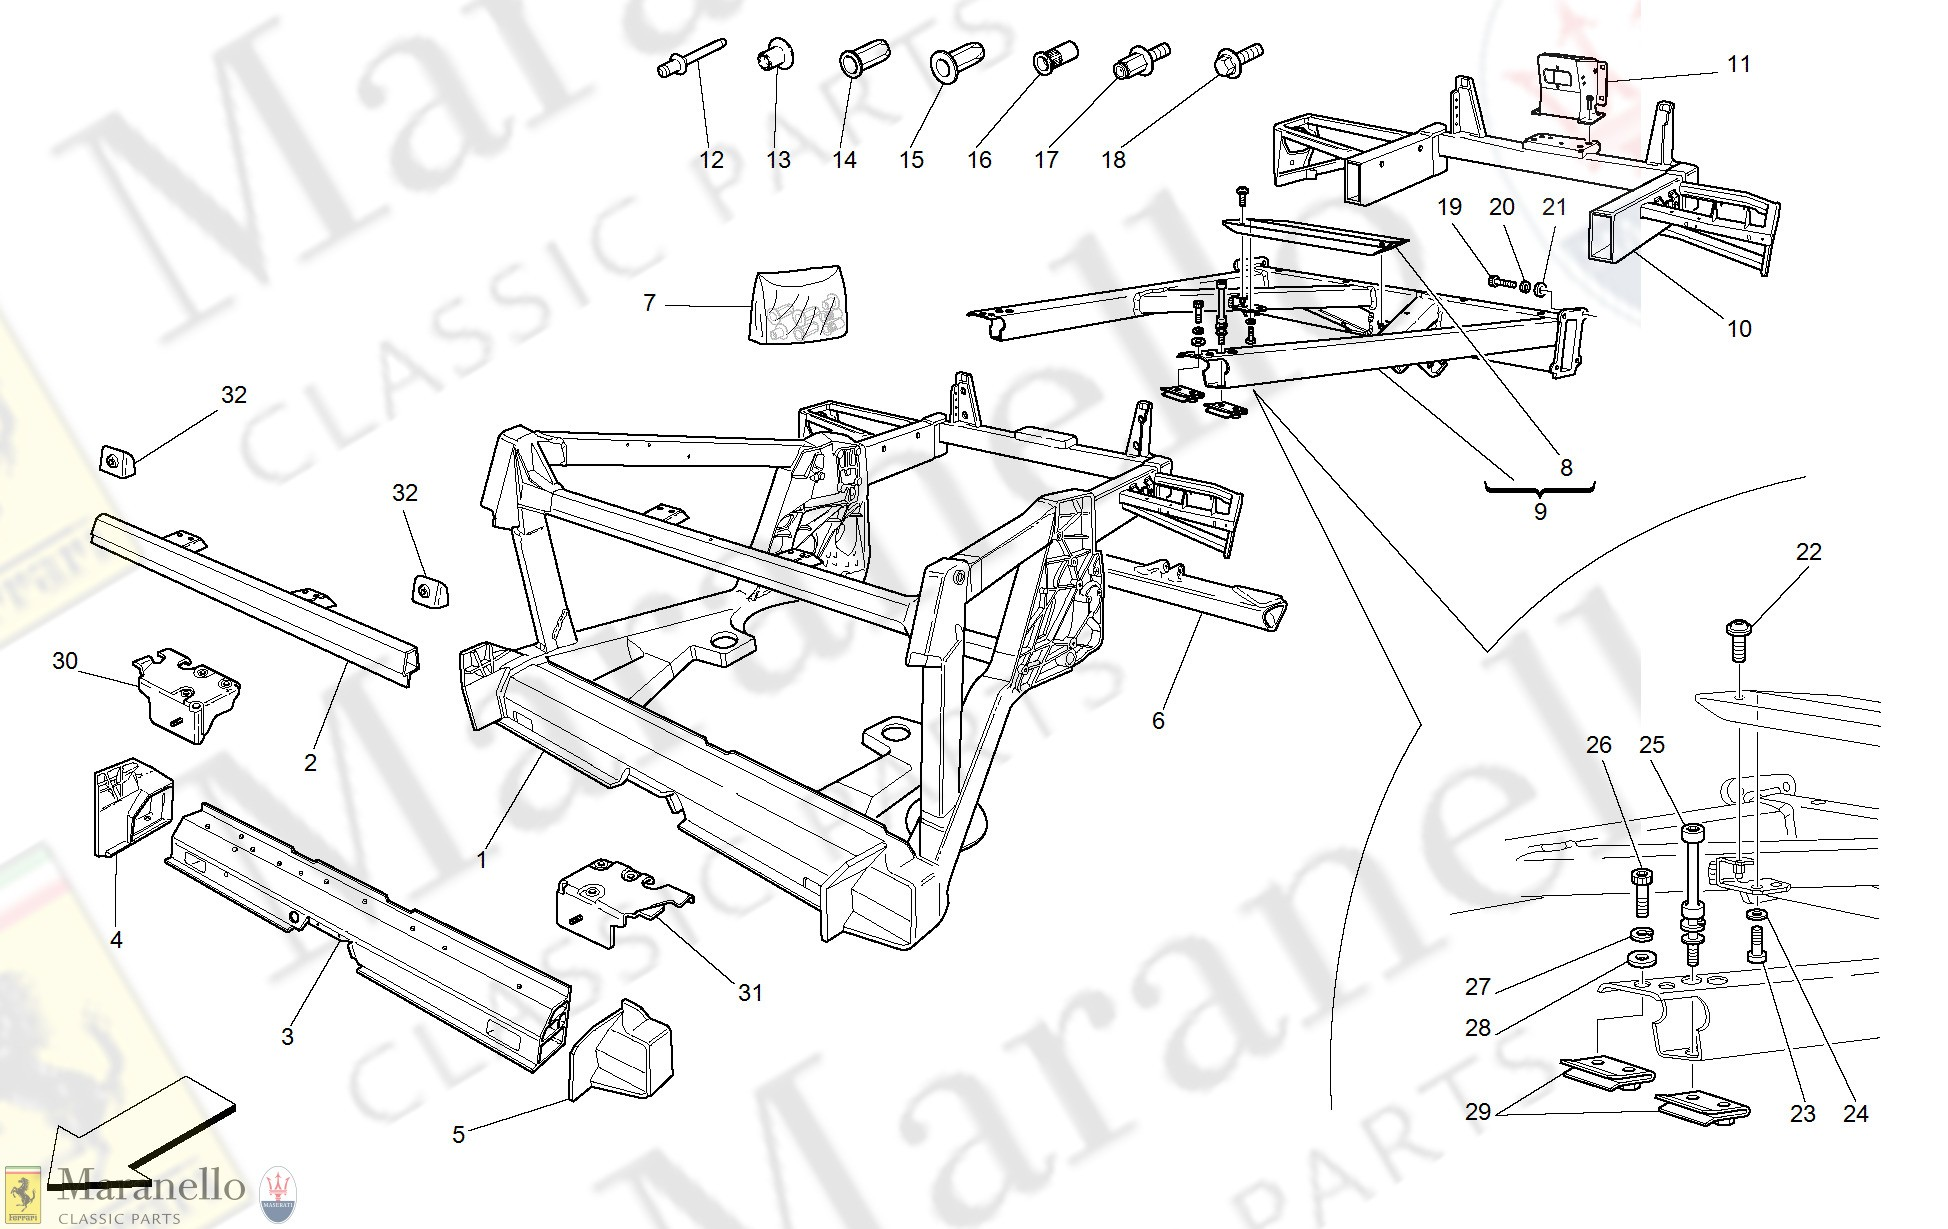 Car Frame Diagram 104 Frame Rear Elements Structures and Plates Parts Of Car Frame Diagram